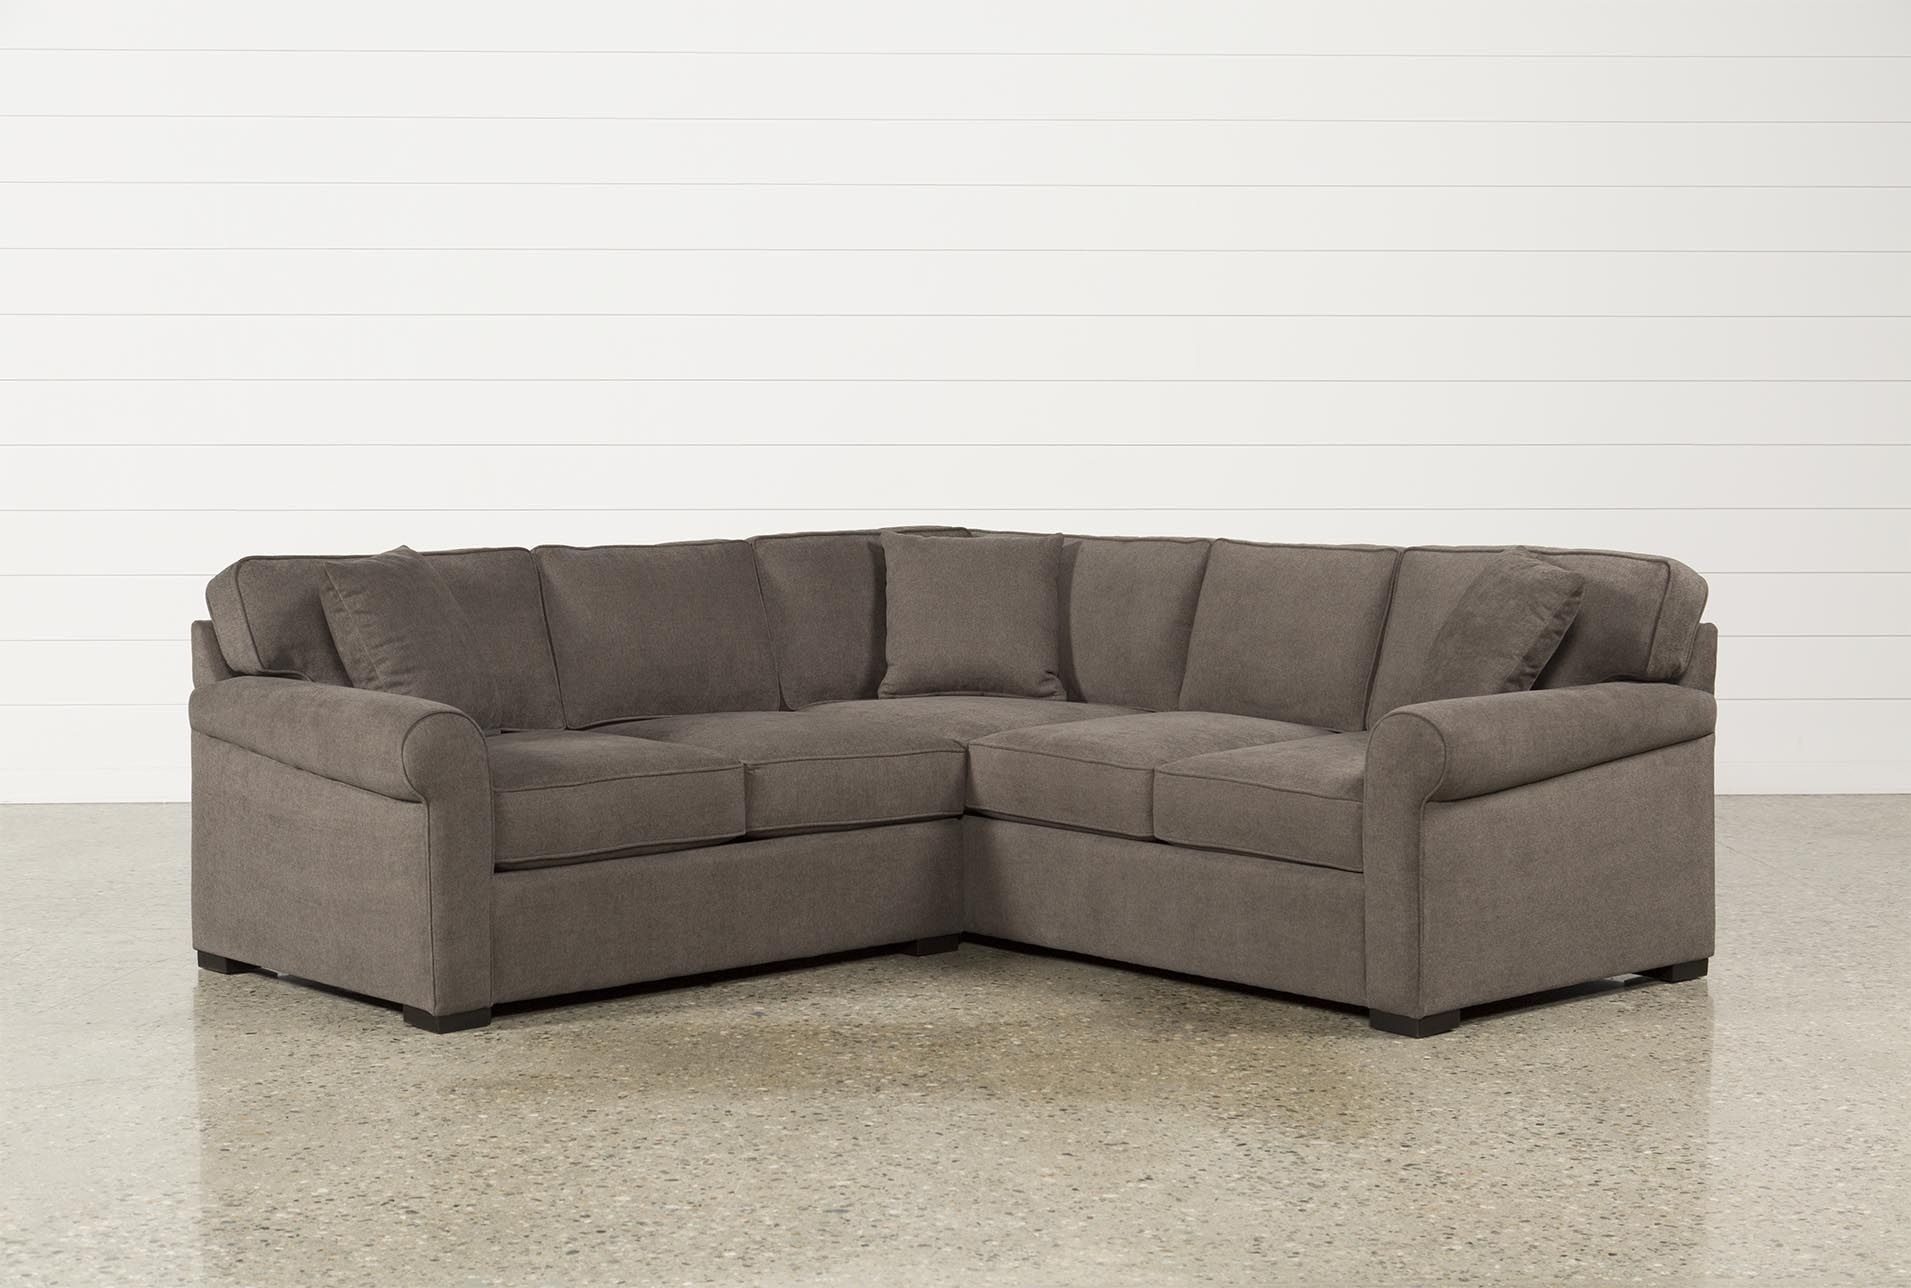 Elm Grande 2 Piece Sectional with regard to Turdur 2 Piece Sectionals With Laf Loveseat (Image 6 of 30)